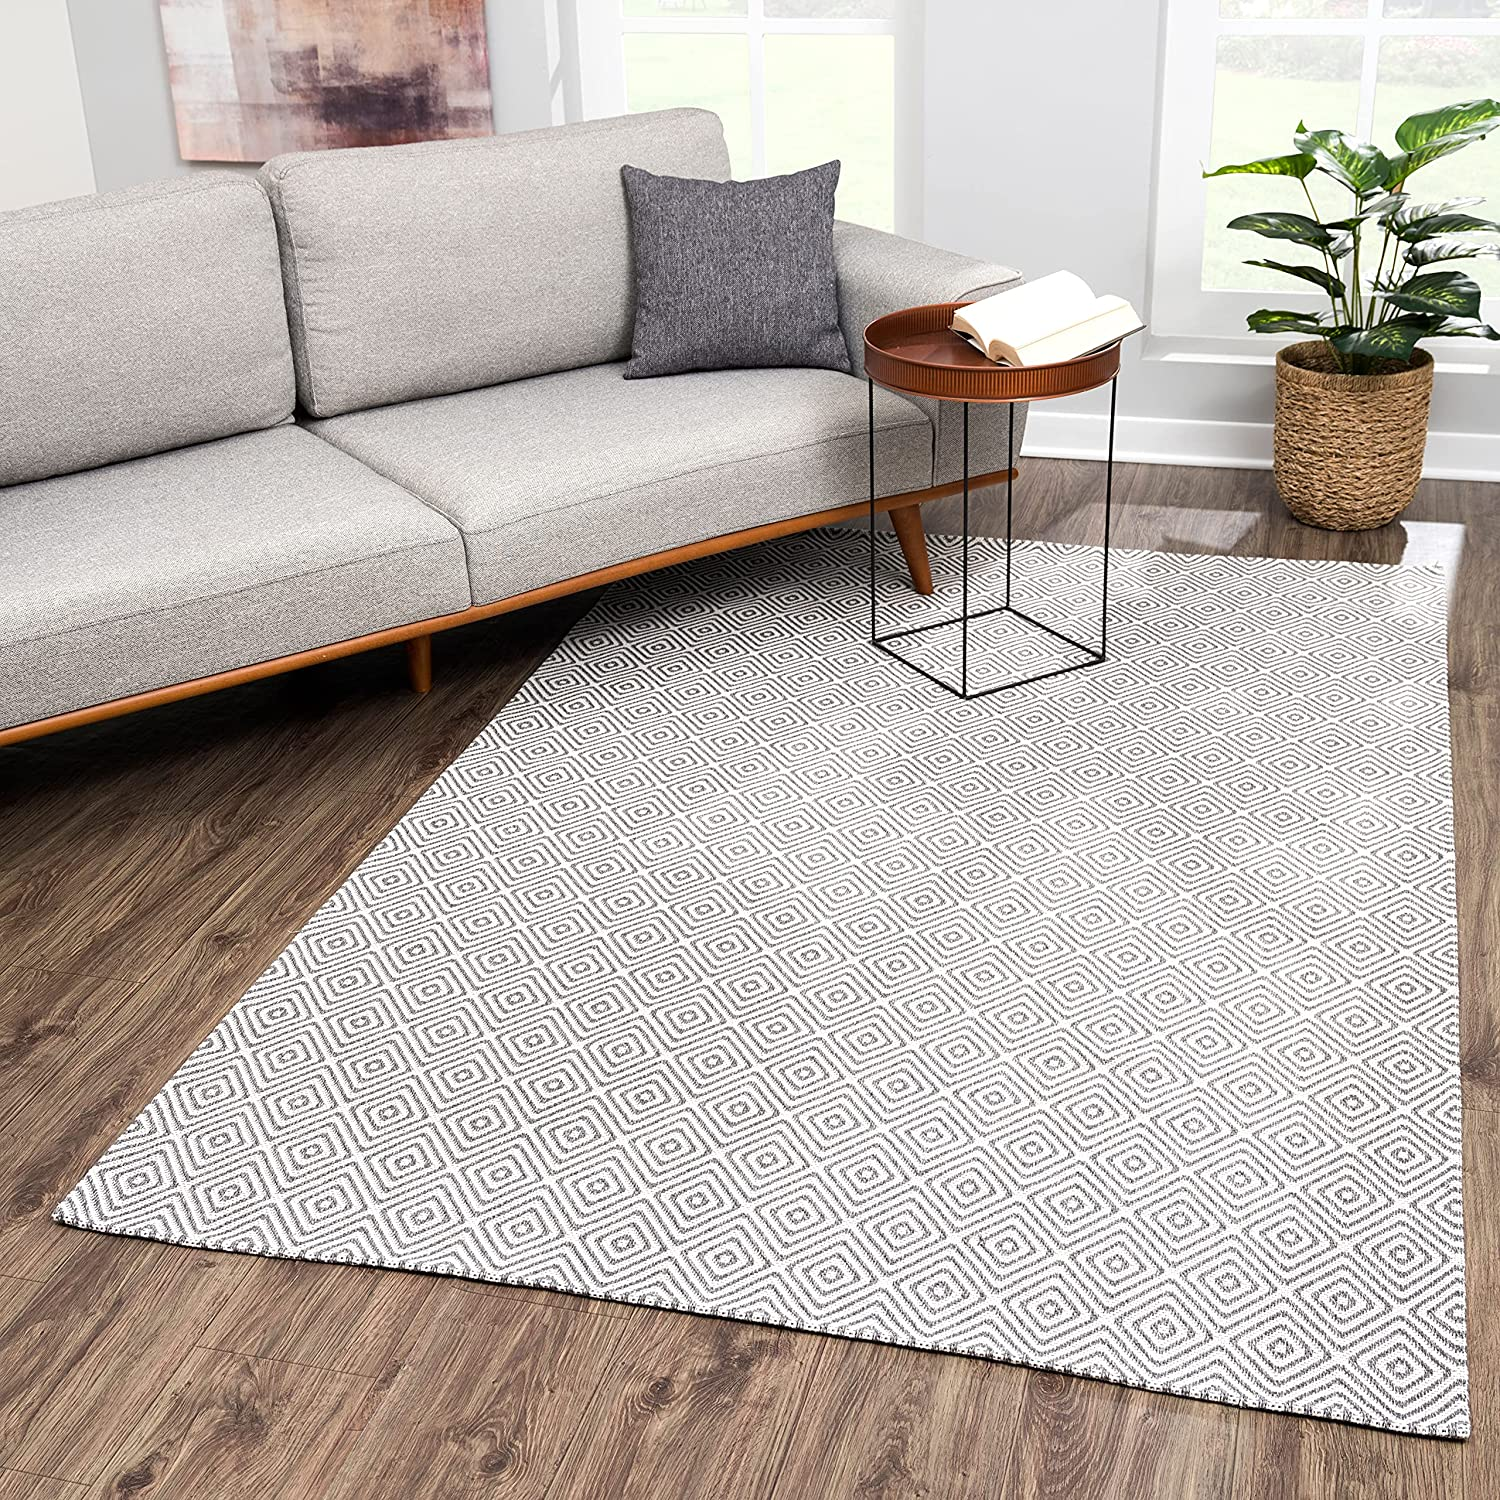 Natural Washable Cotton 5x8 Area Max 47% OFF Balco Kitchen A surprise price is realized Rug for Bedroom